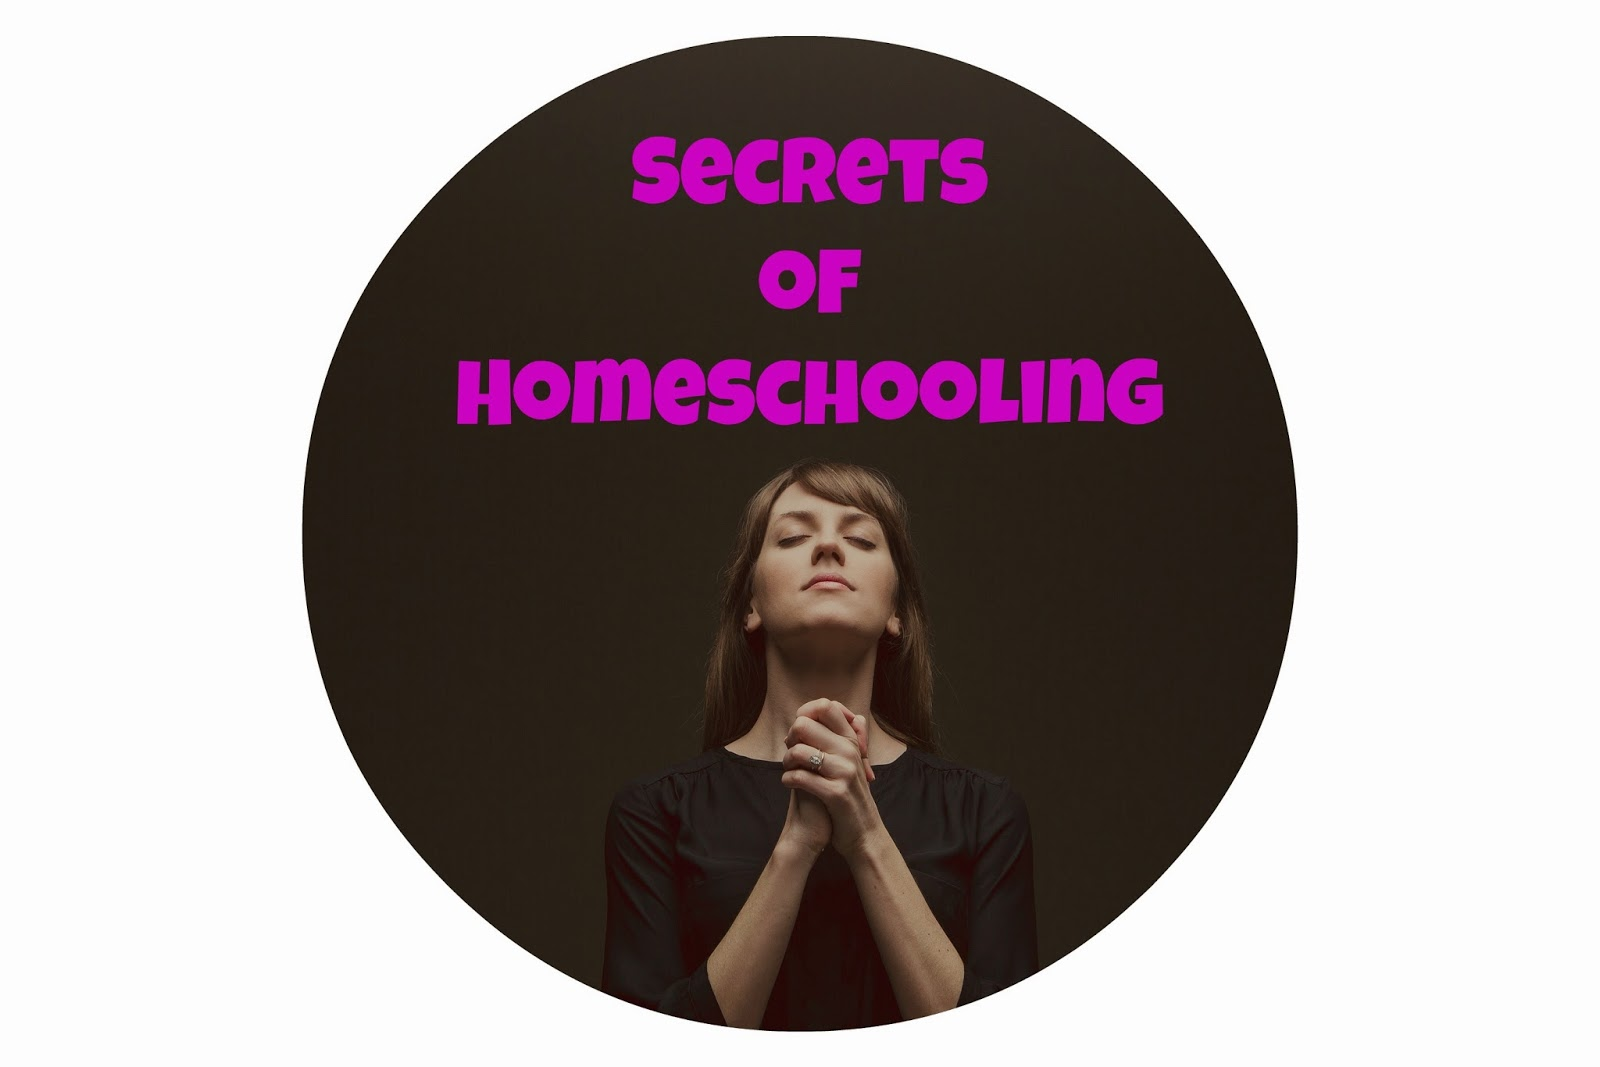 Secrets of Homeschooling